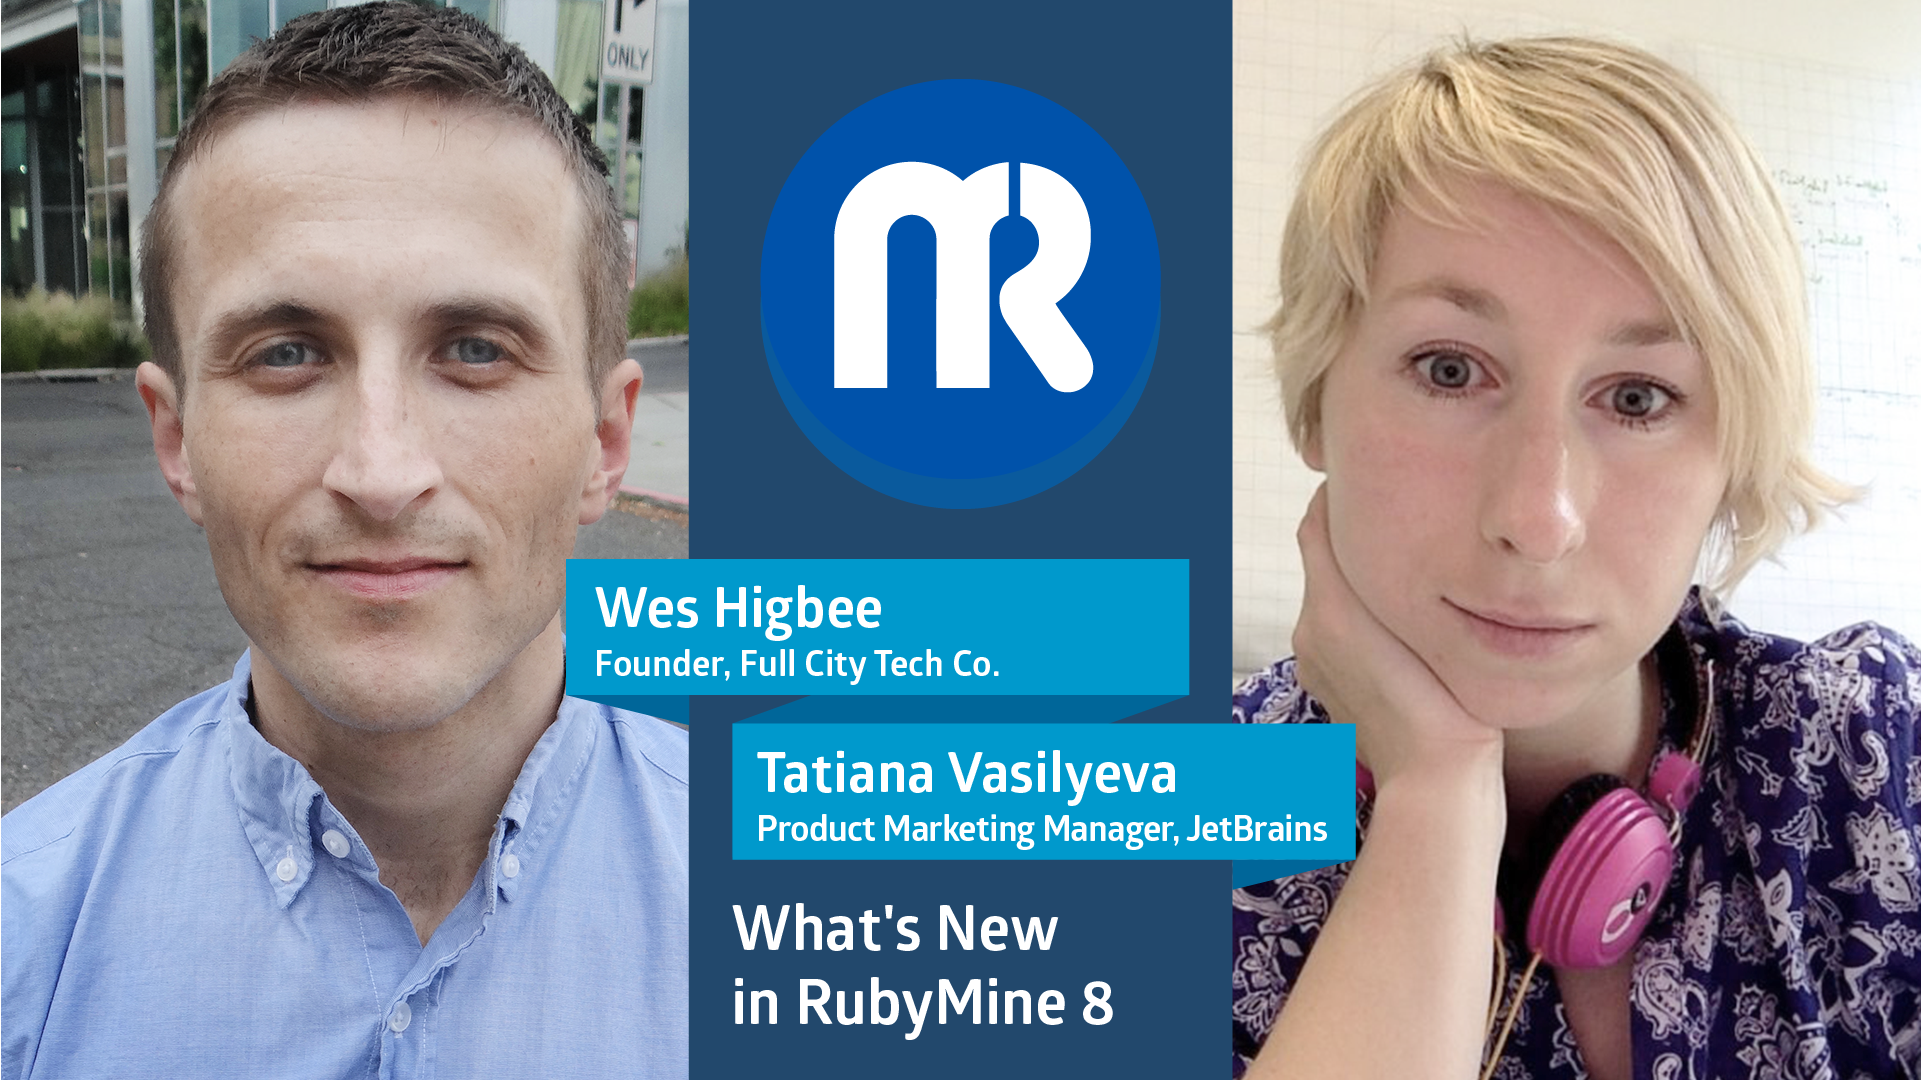 RubyMine_Webinar_2Wide_Whats_New_in_RubyMine_8